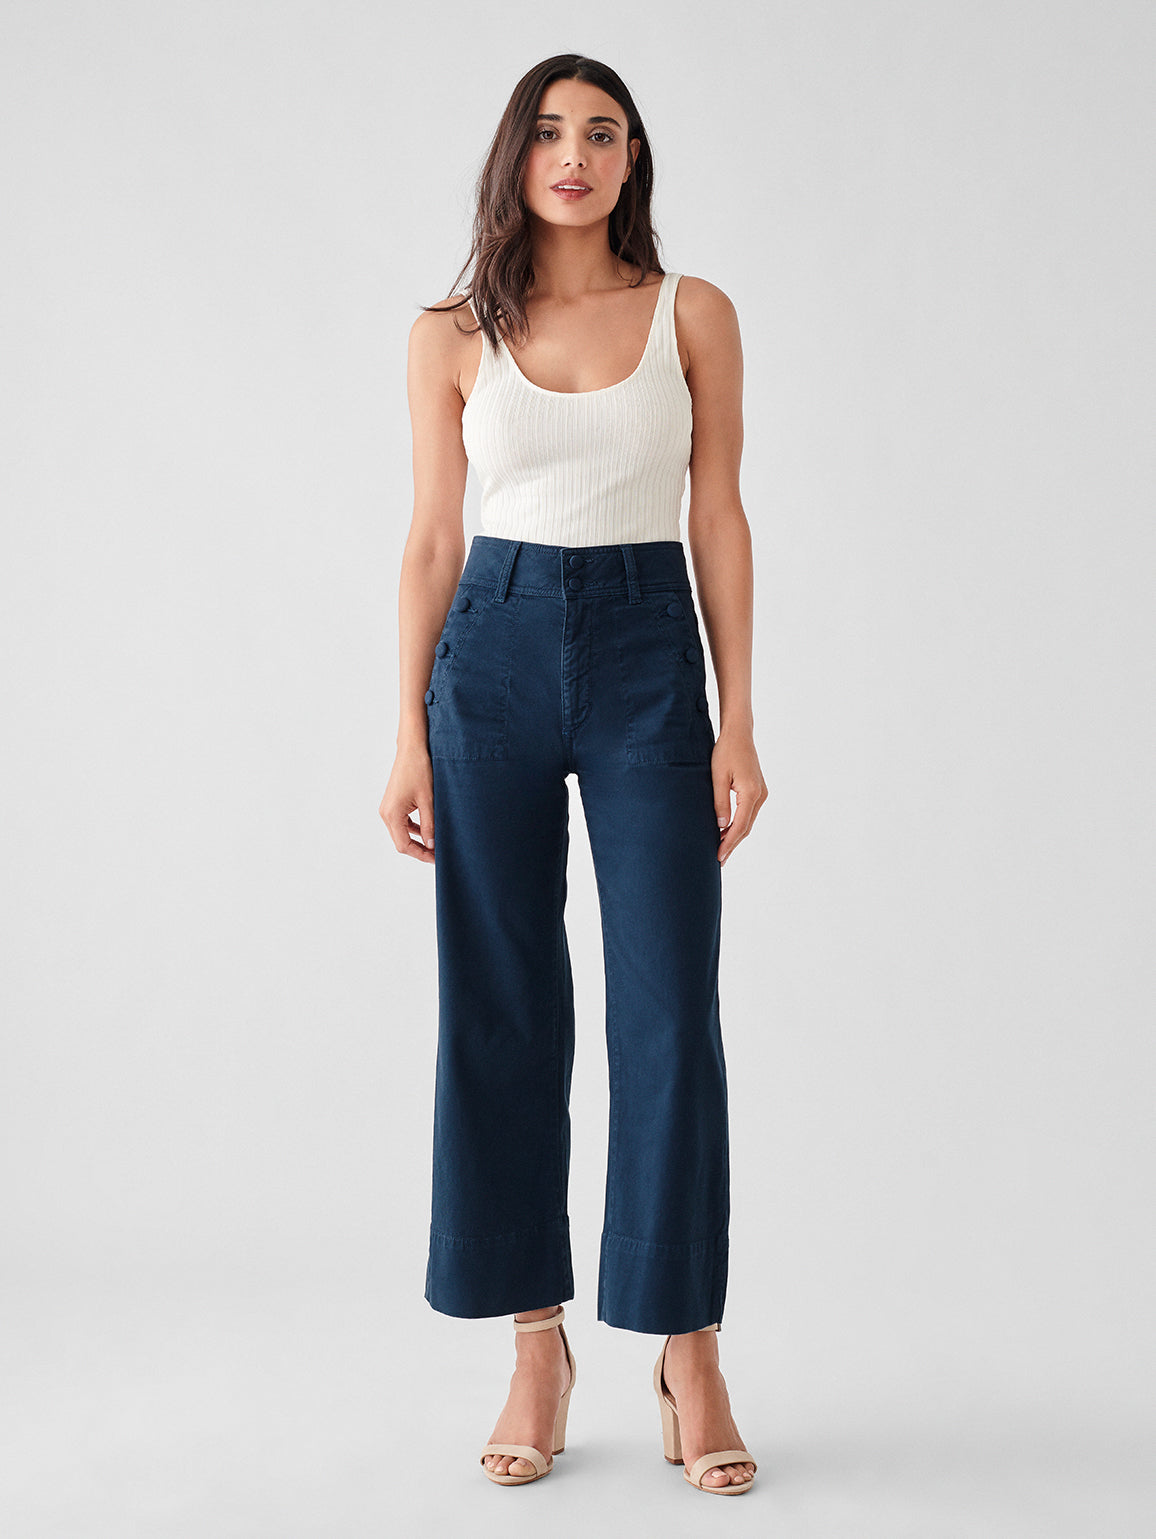 Hepburn High Rise Wide Leg | Sailor